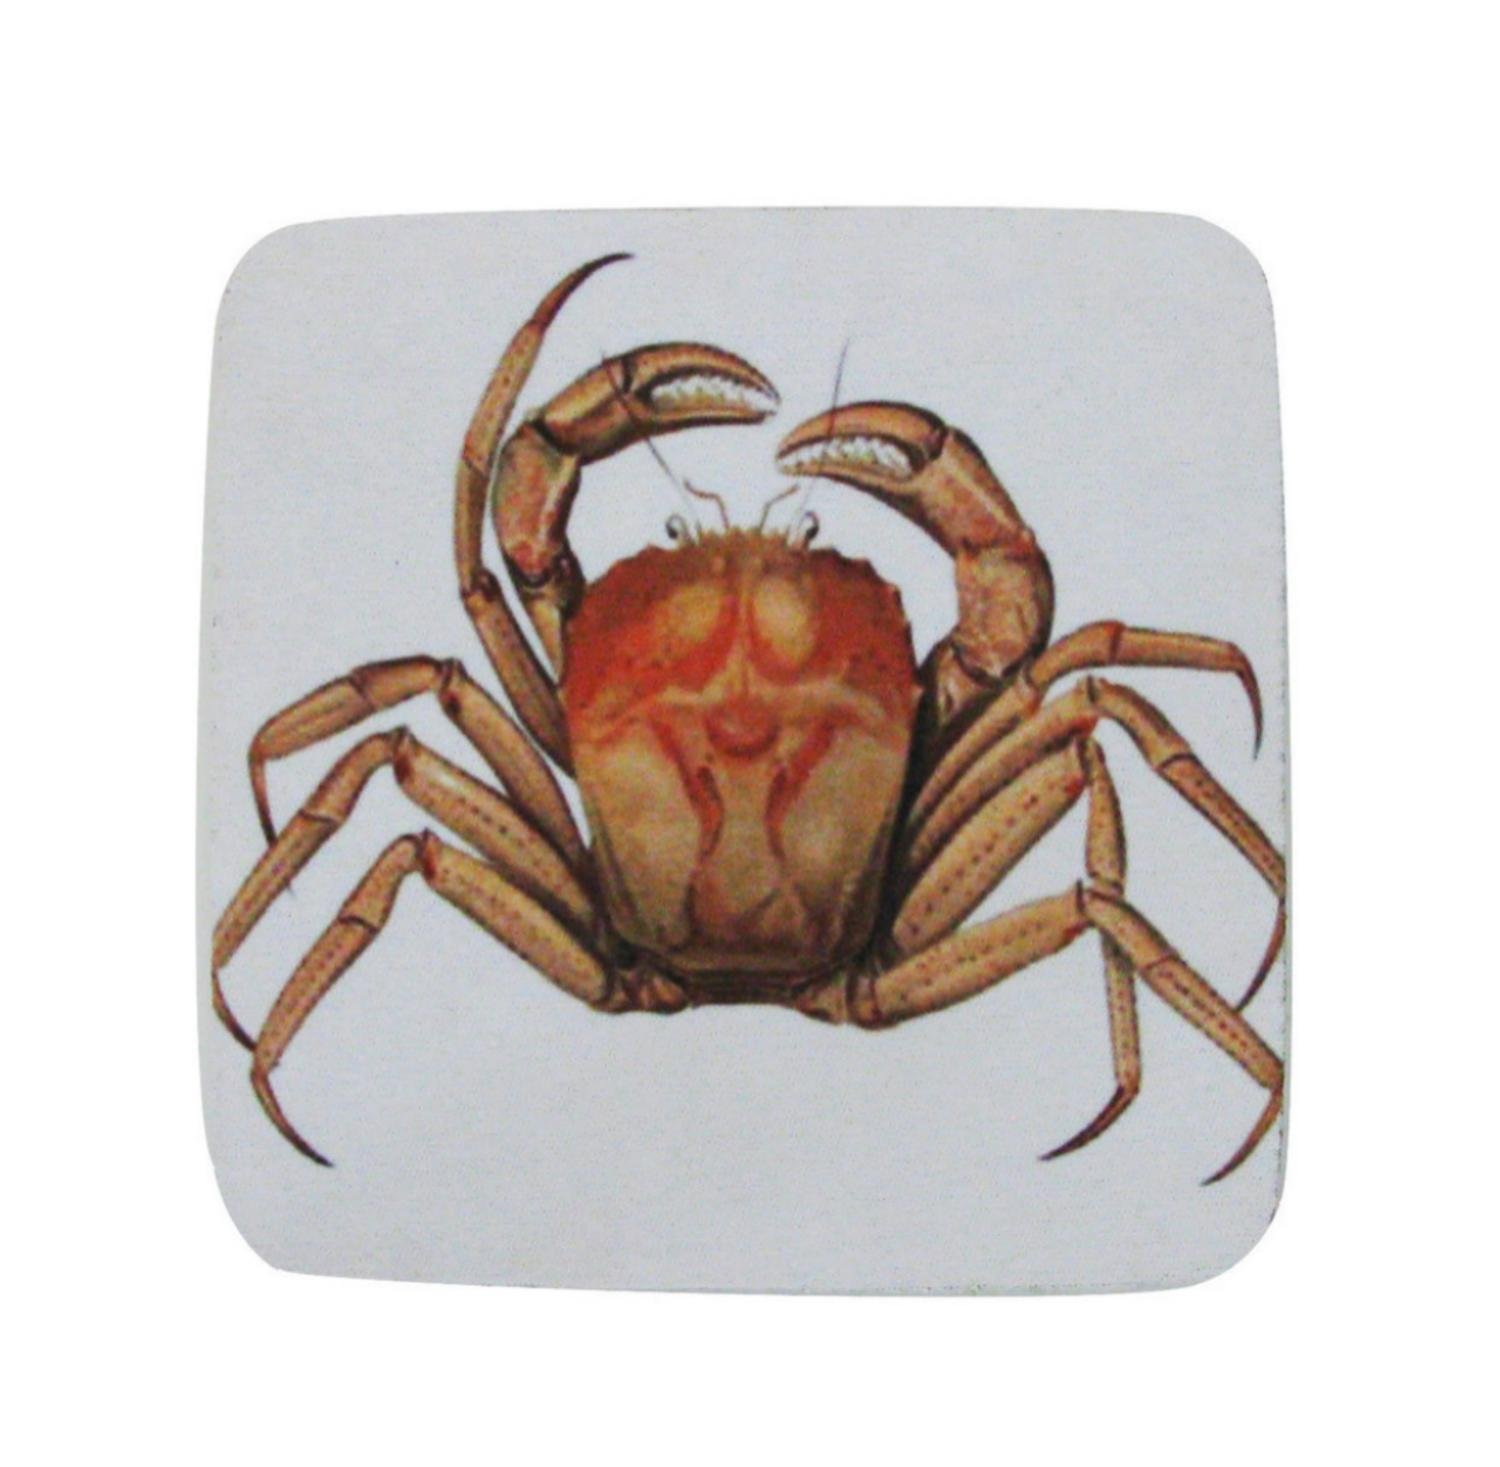 Pack of 8 Absorbent Antique Style Mud Crab Illustration Cocktail Drink Coasters 4""